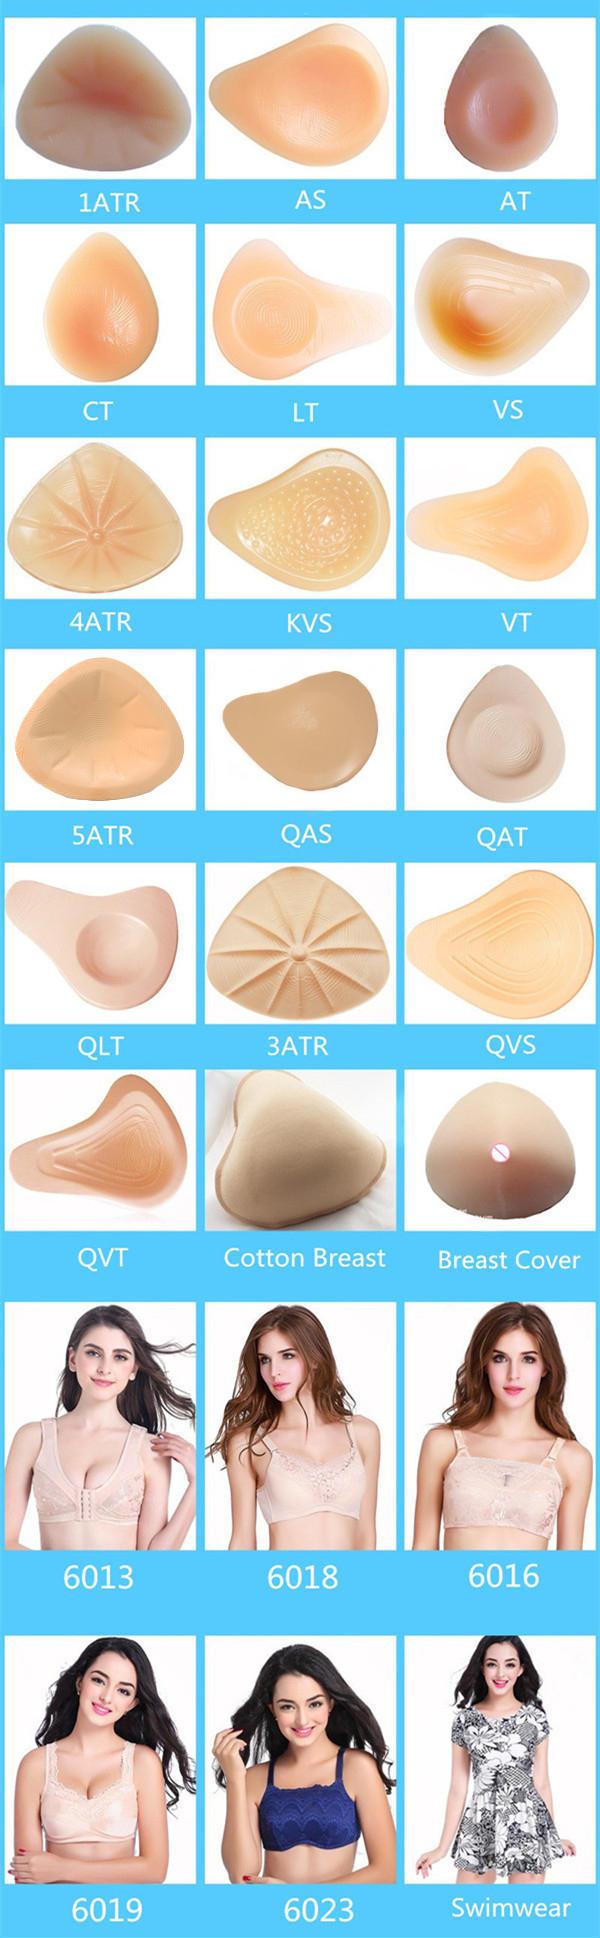 400g/piece 95C/100B-C/105A-C/110A-C Size9 Silicone Chest Protector Artificial Silicone Breast Forms Prosthetics For Mastectomy